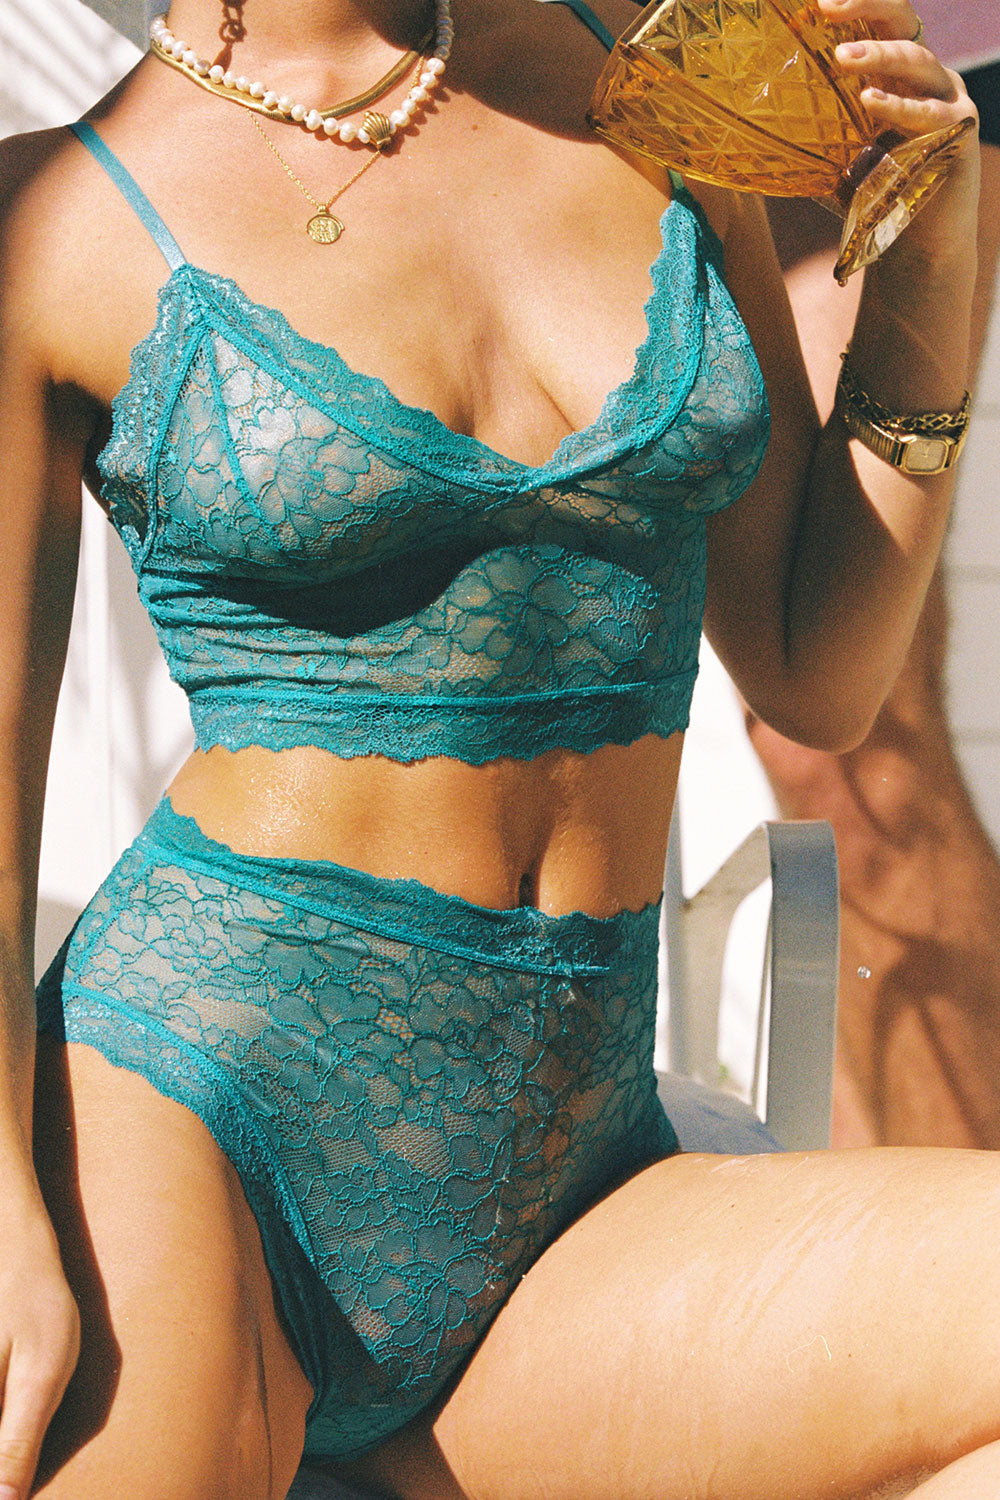 Faith Hi Waist Knickers in Teal